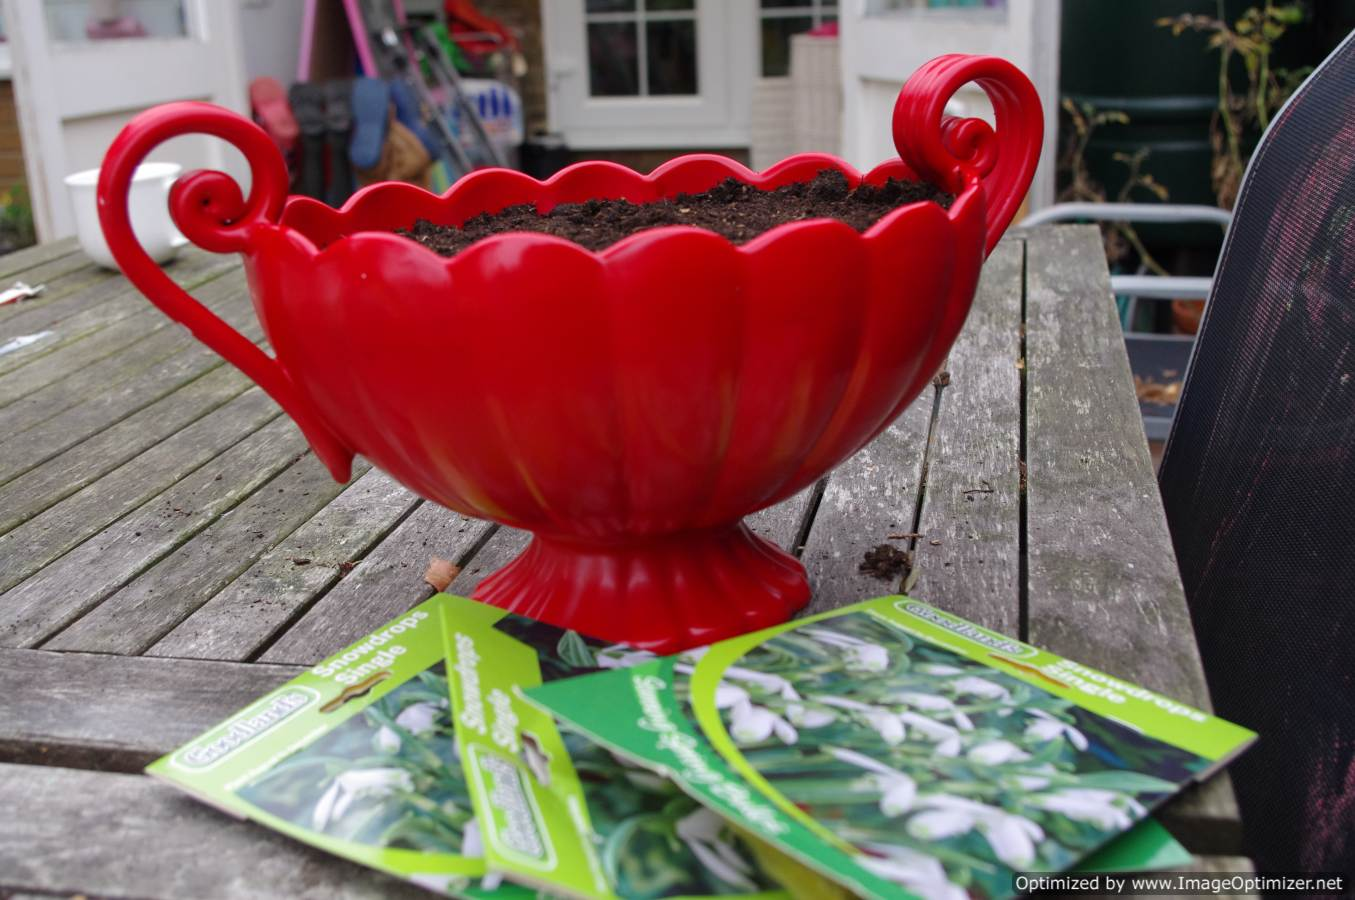 Planting spring bulbs: upcycled crockery